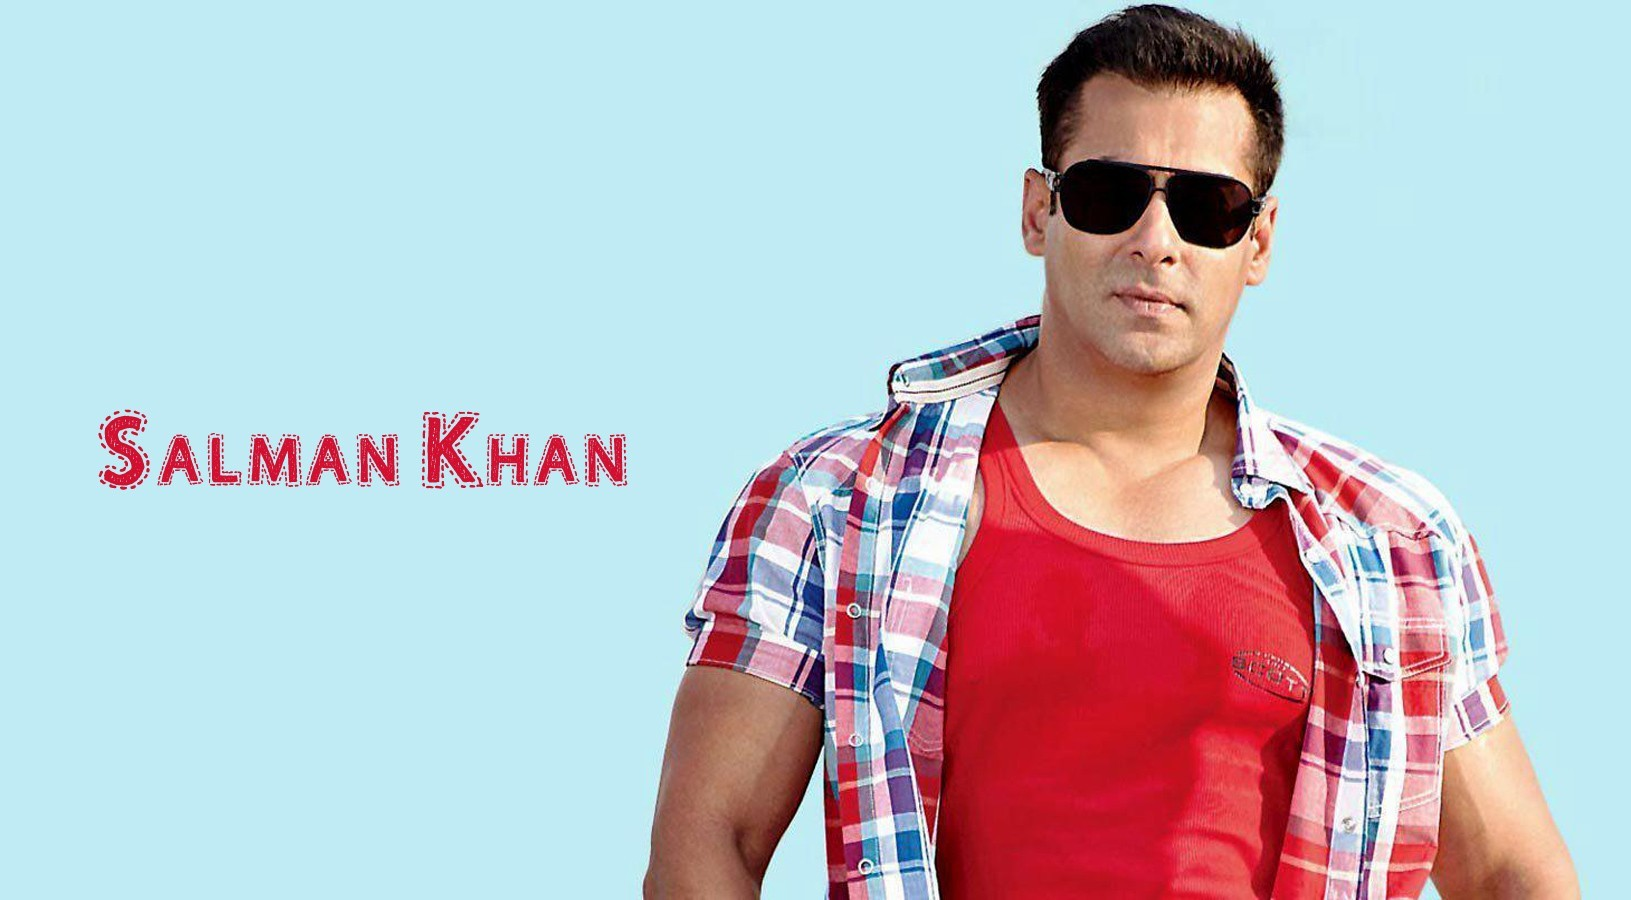 Salman Khan wallpaper free